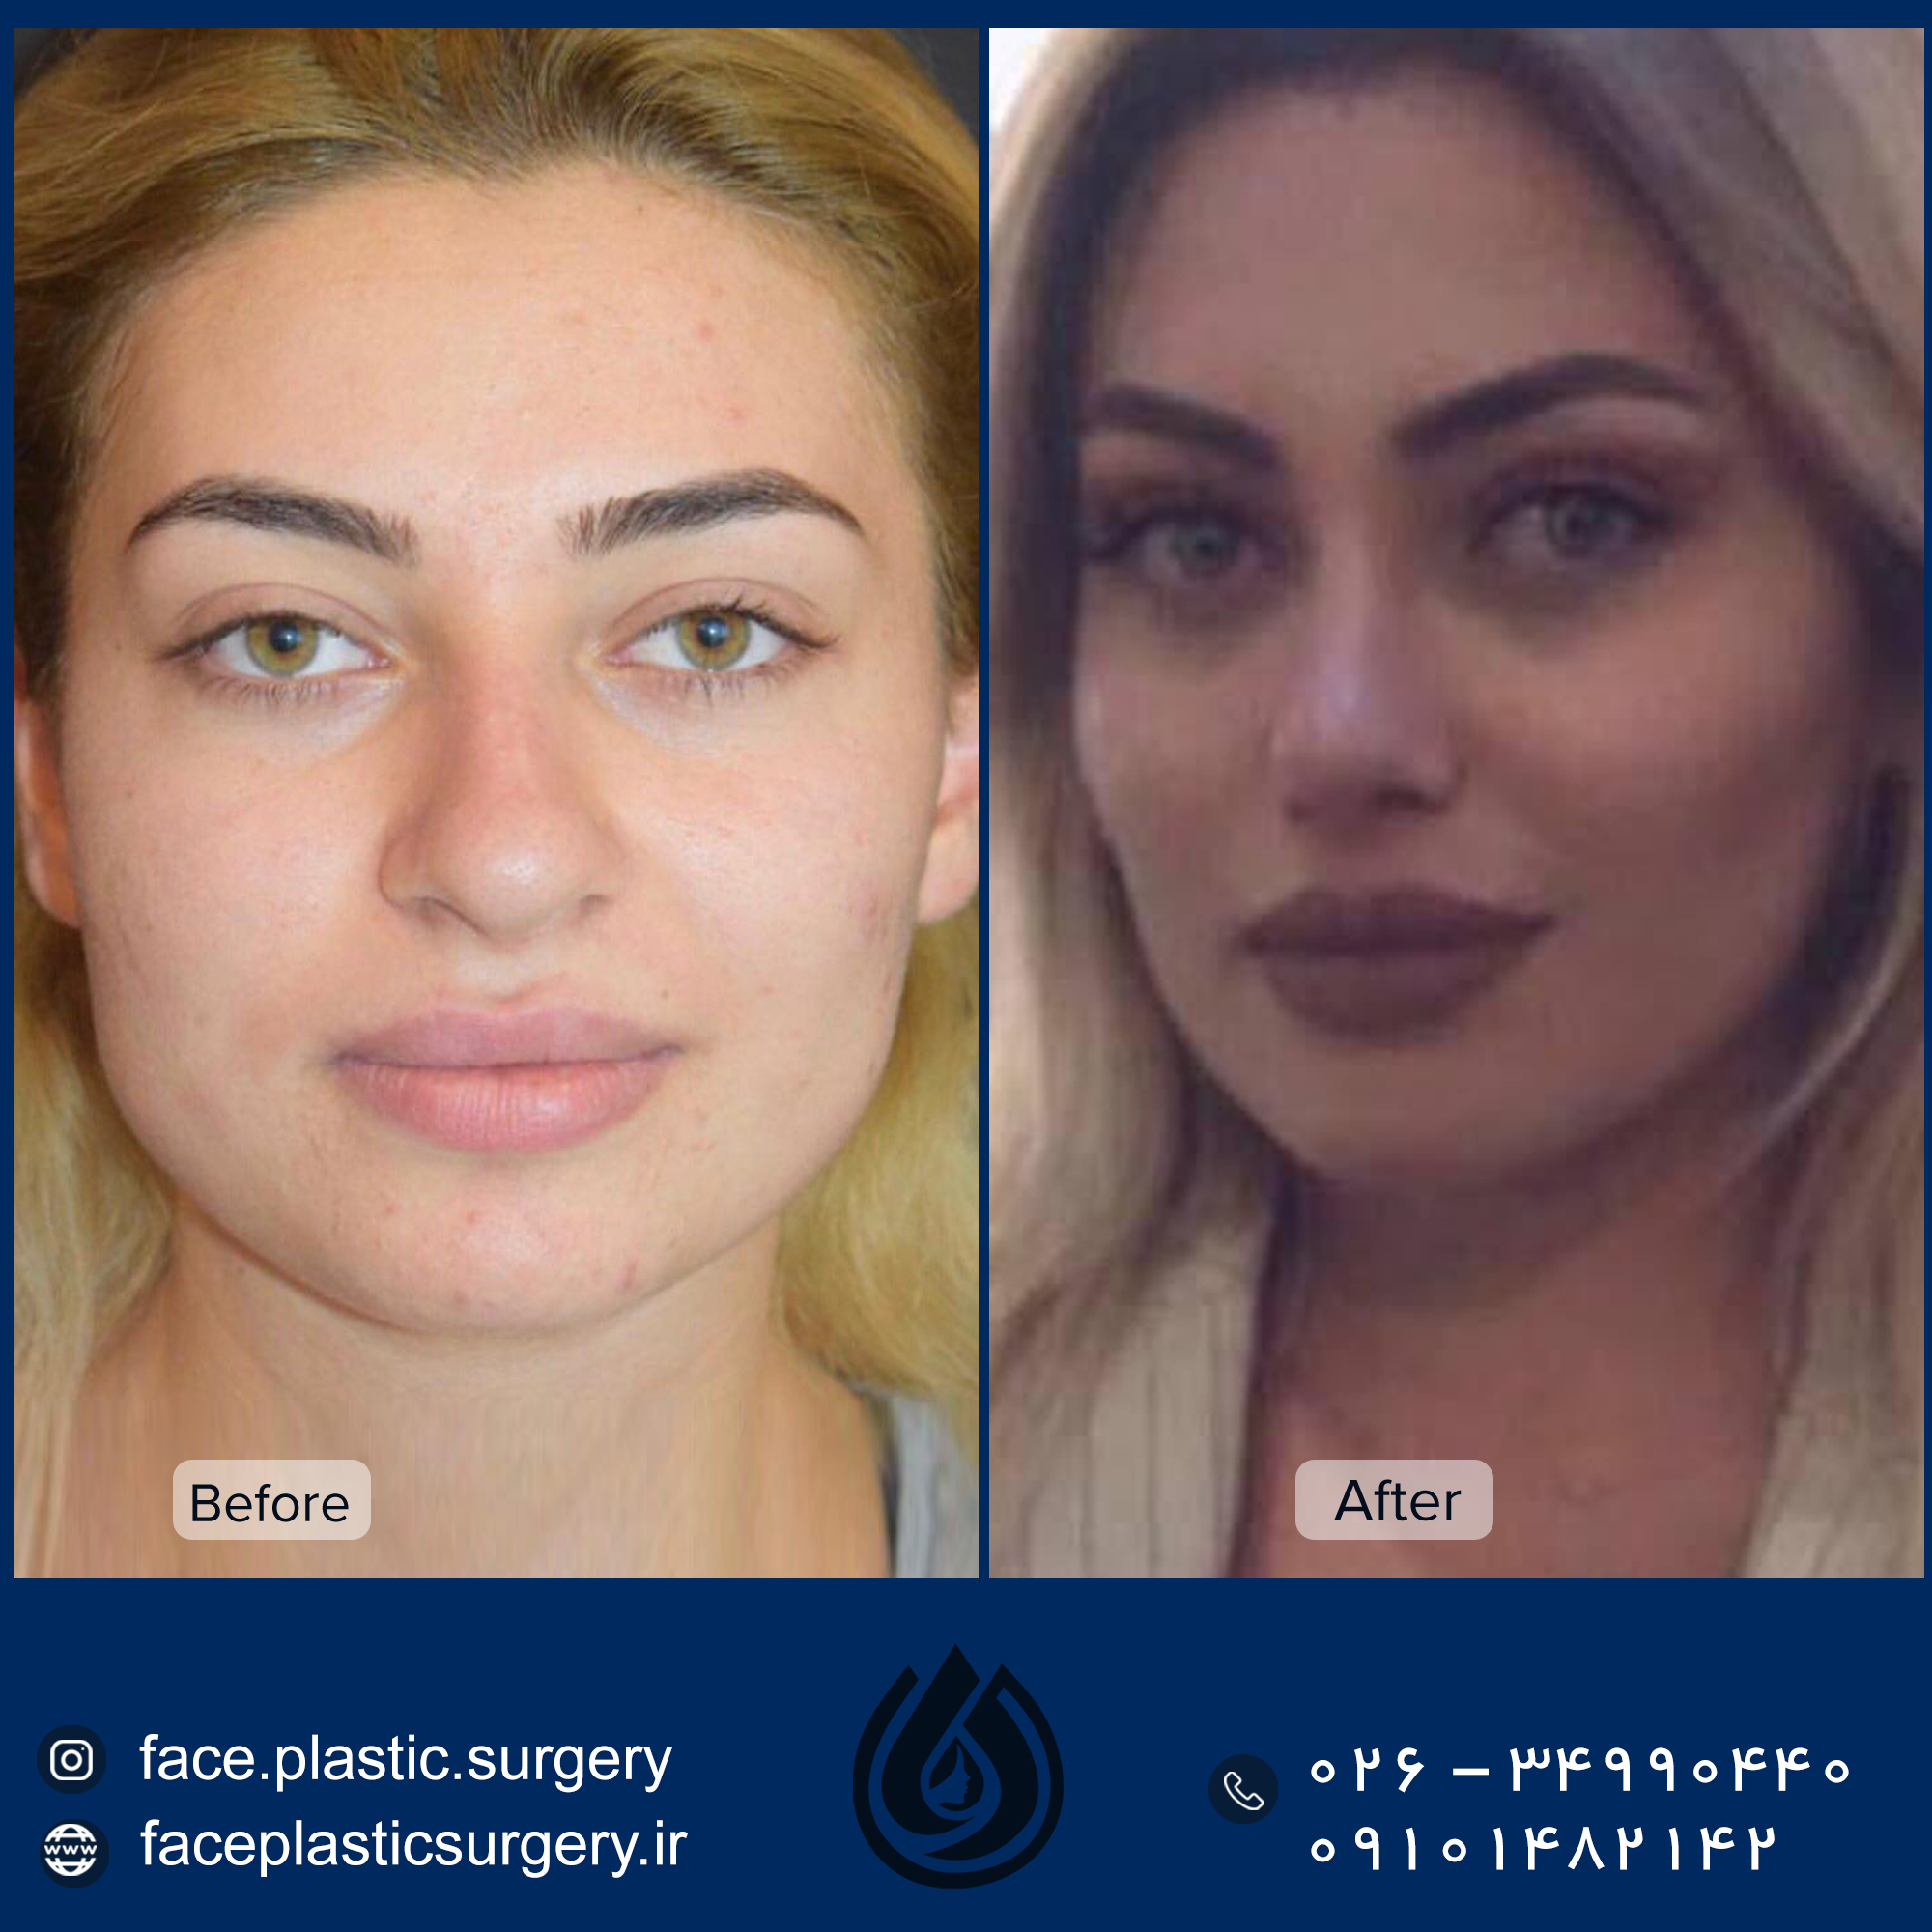 dr-norozi-before-after.jpg3